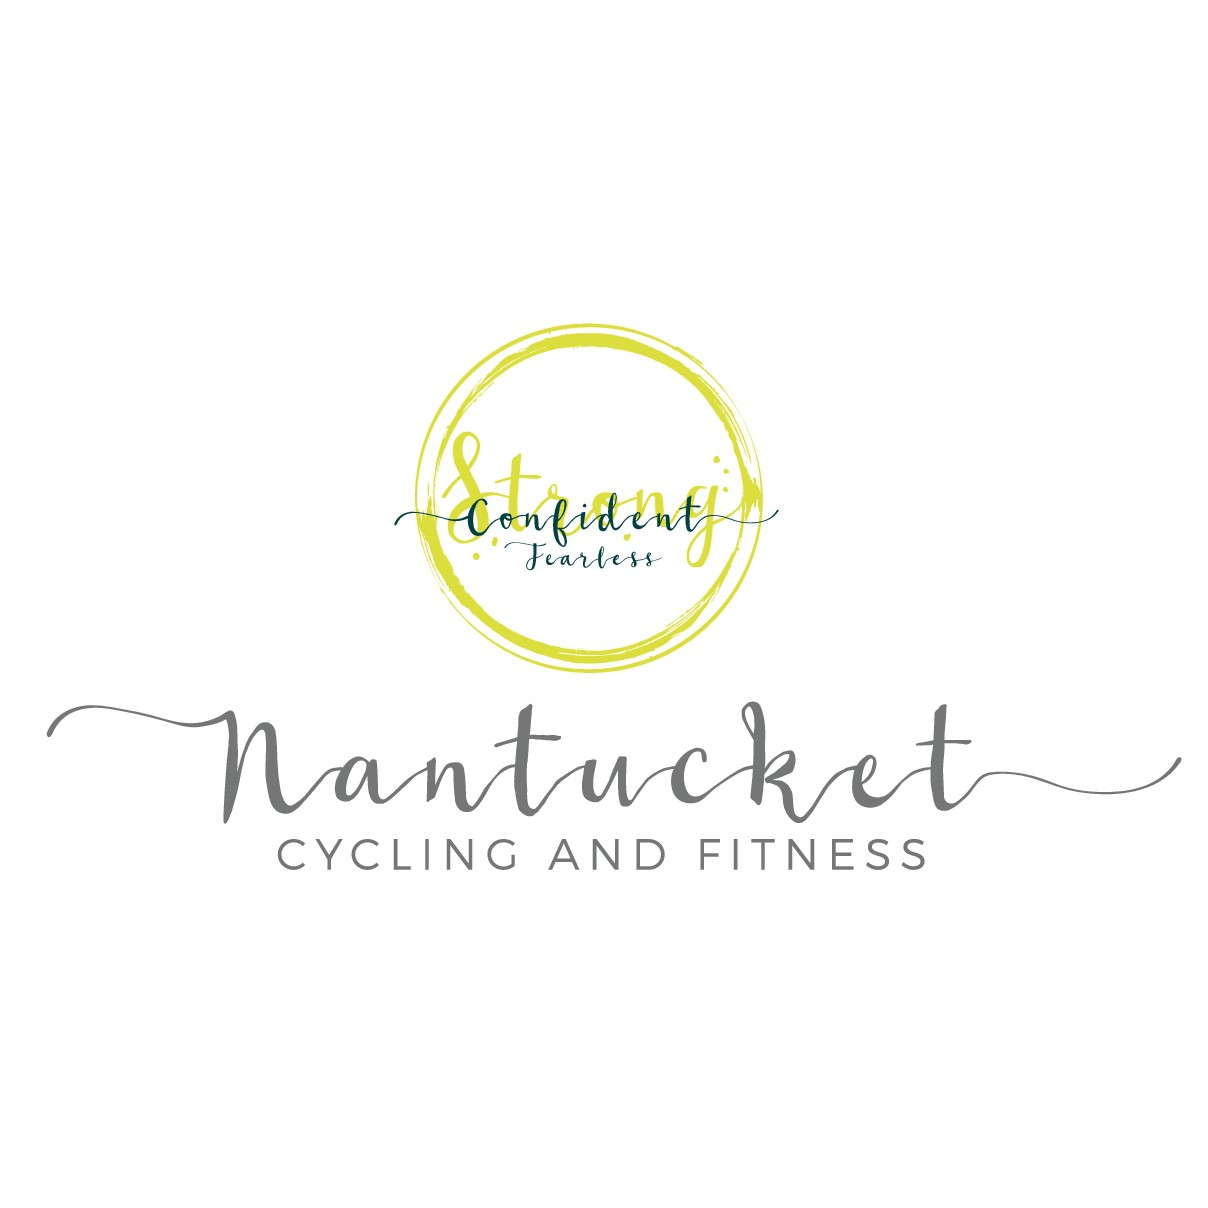 Nantucket Cycling and Fitness